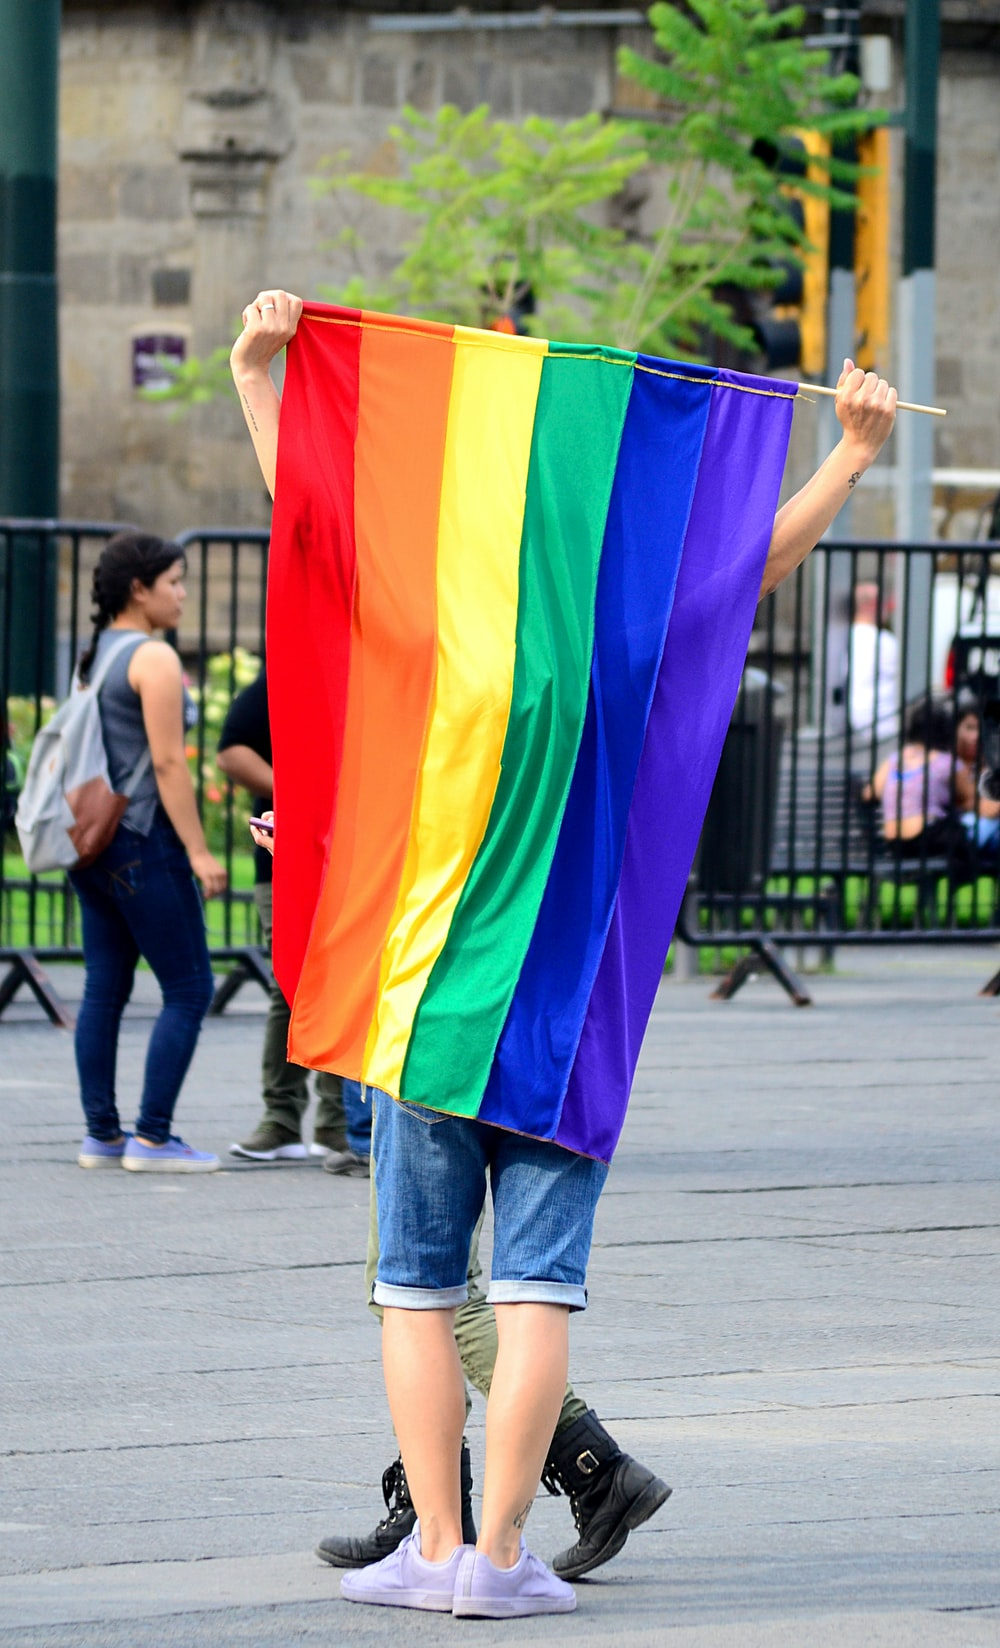 person holding multicolored flag